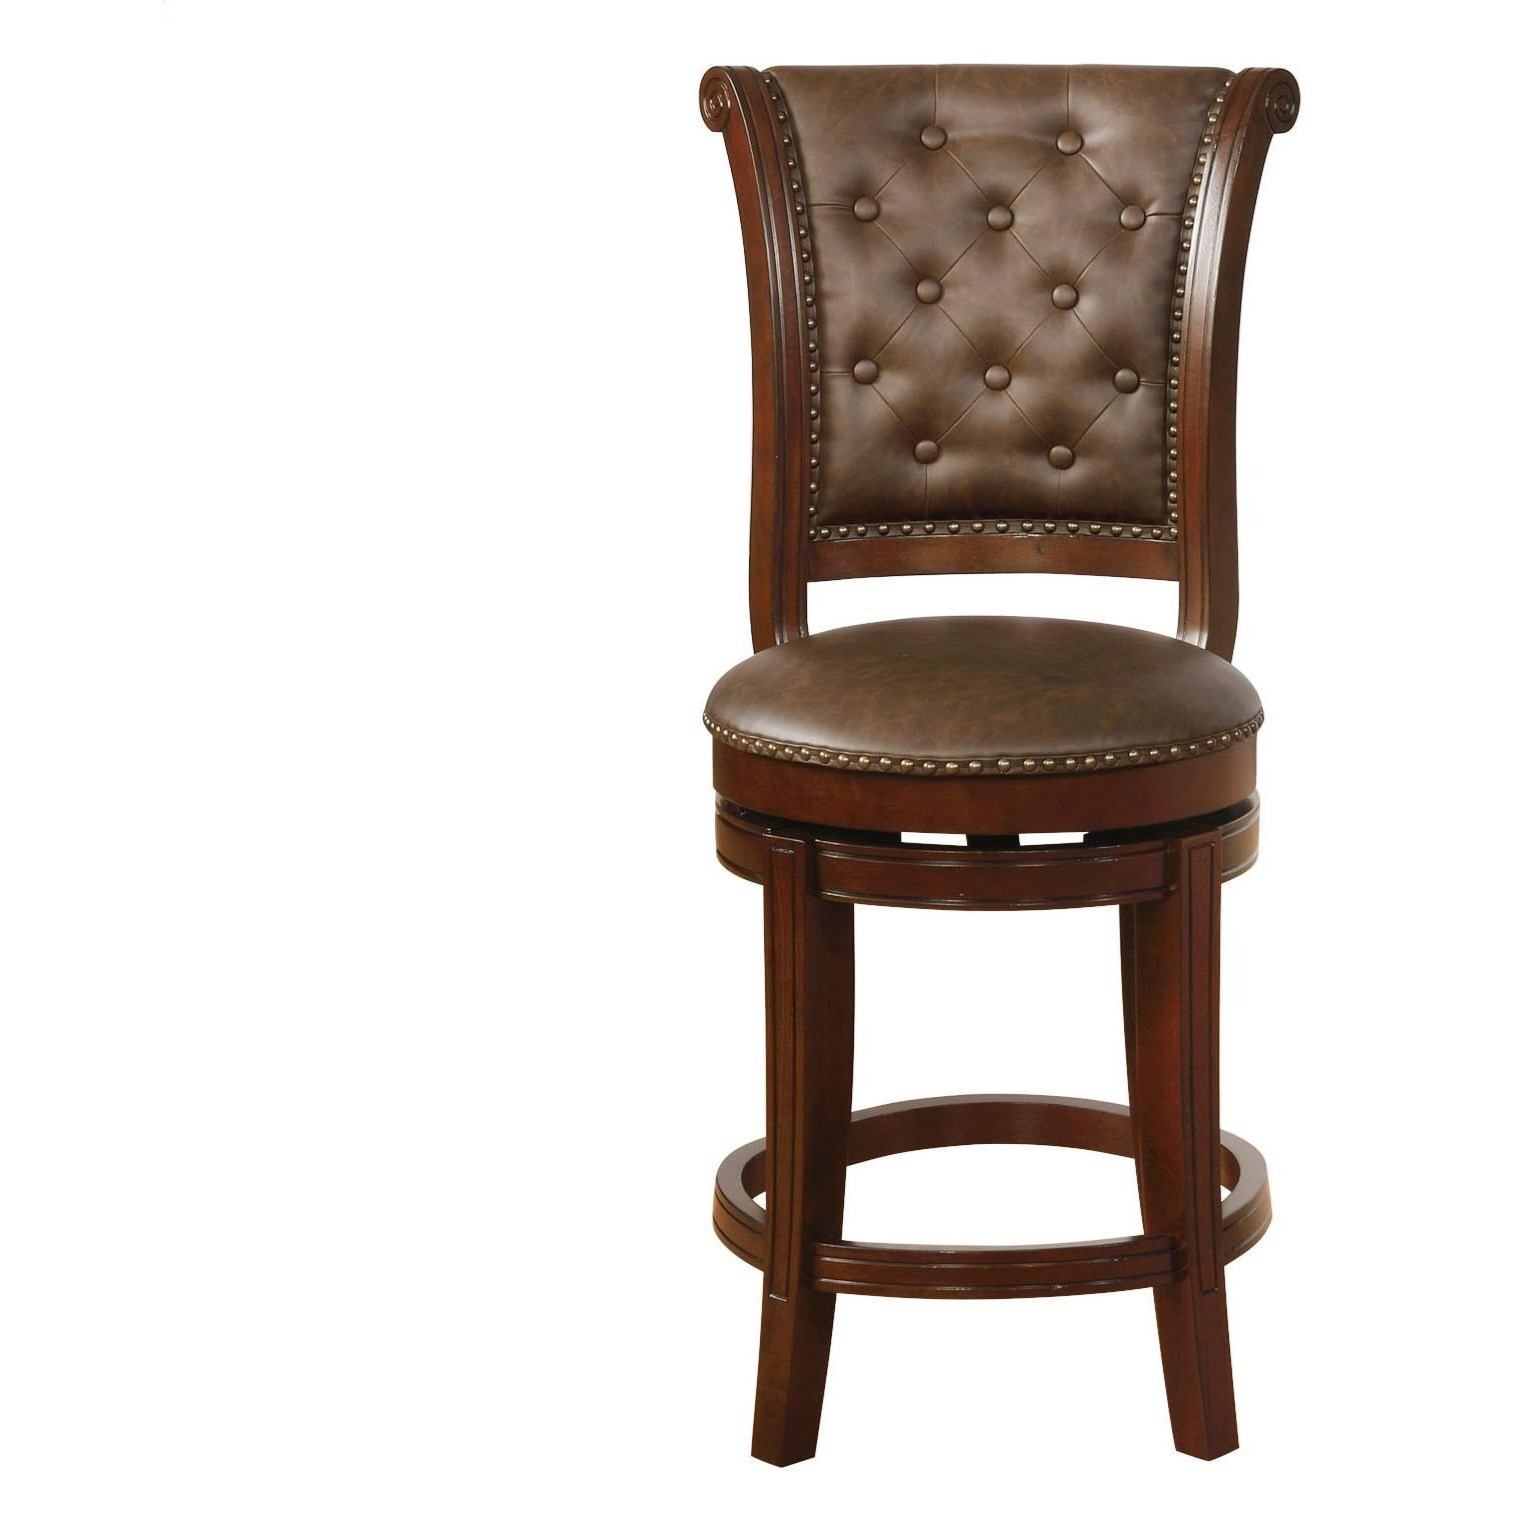 Traditional Swivel Counter Height Bar Stool with Button Tufting